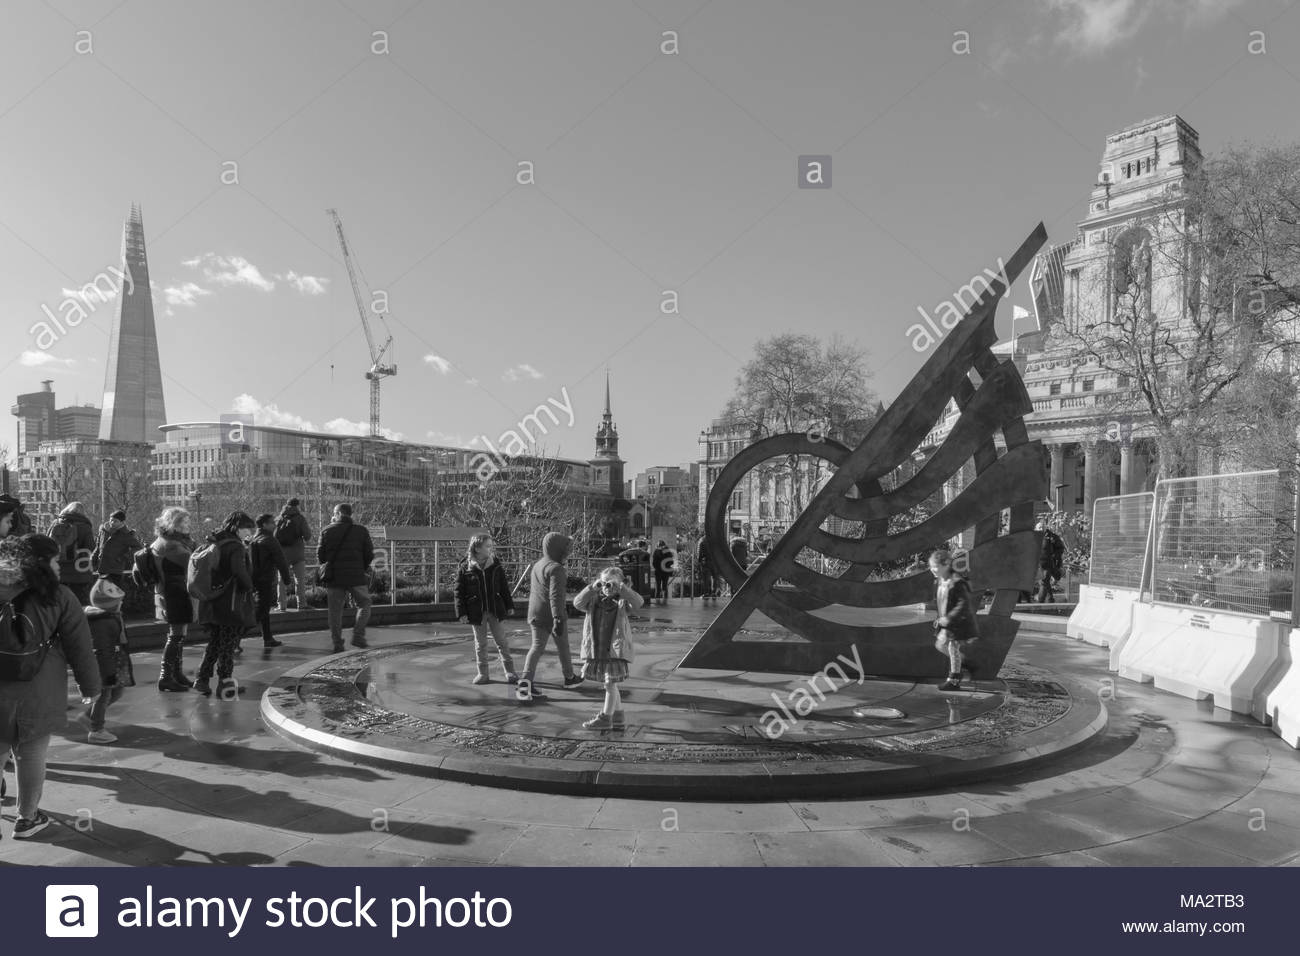 The bronze sundial above Tower Hill Underground Station. Sightseers are milling around the sundial some taking an interest in the history it depicts. - Stock Image